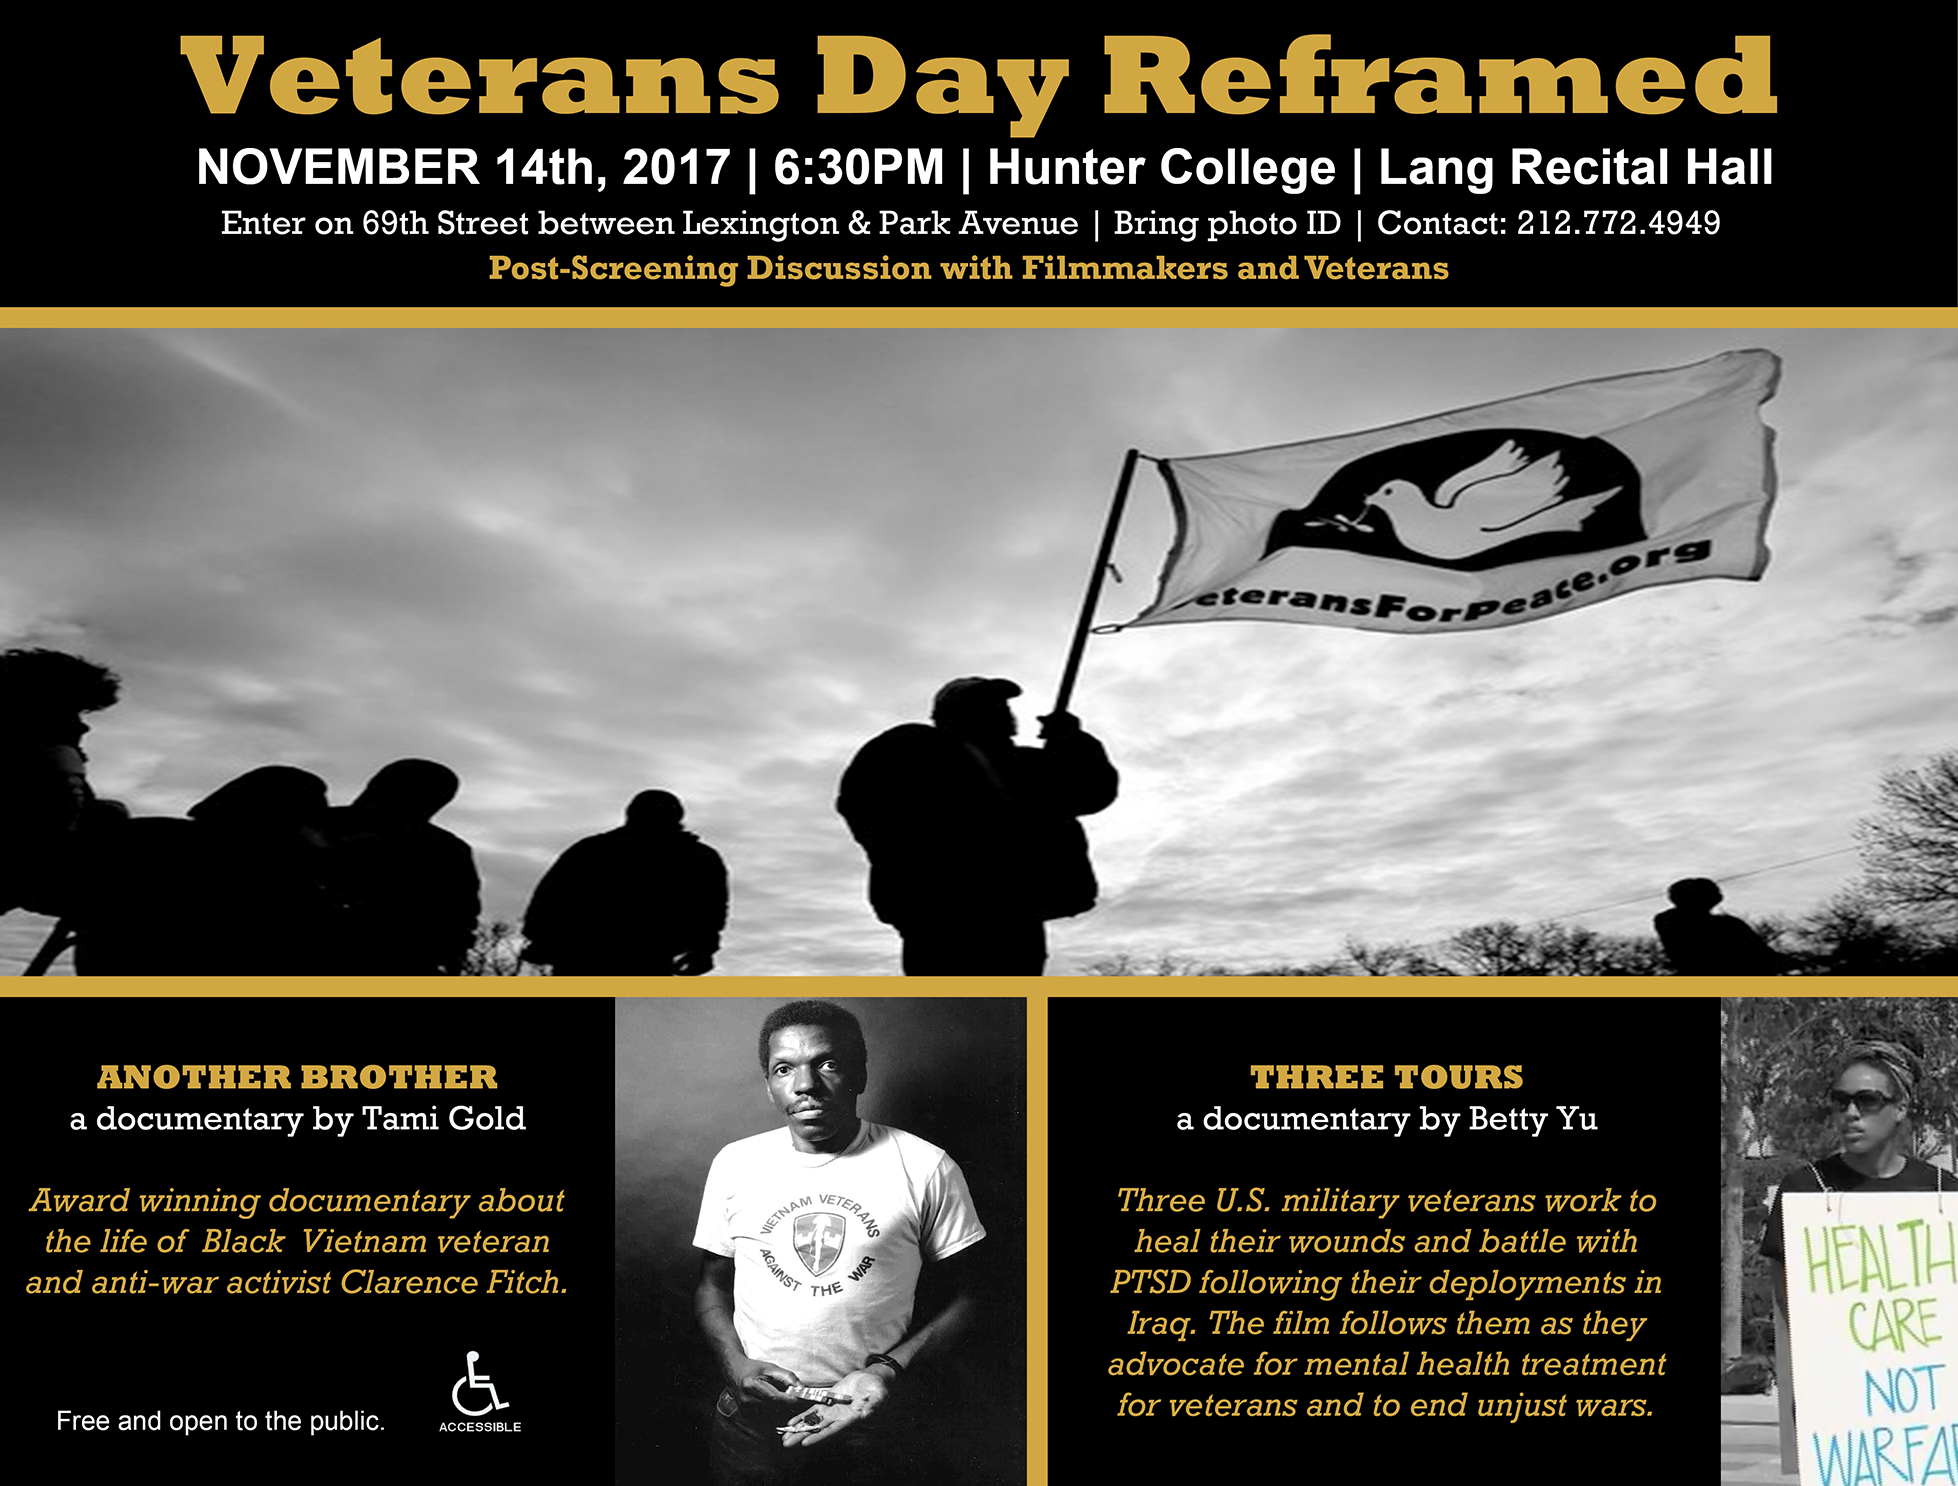 Nov. 14th screening – Veteran's Day Reframed